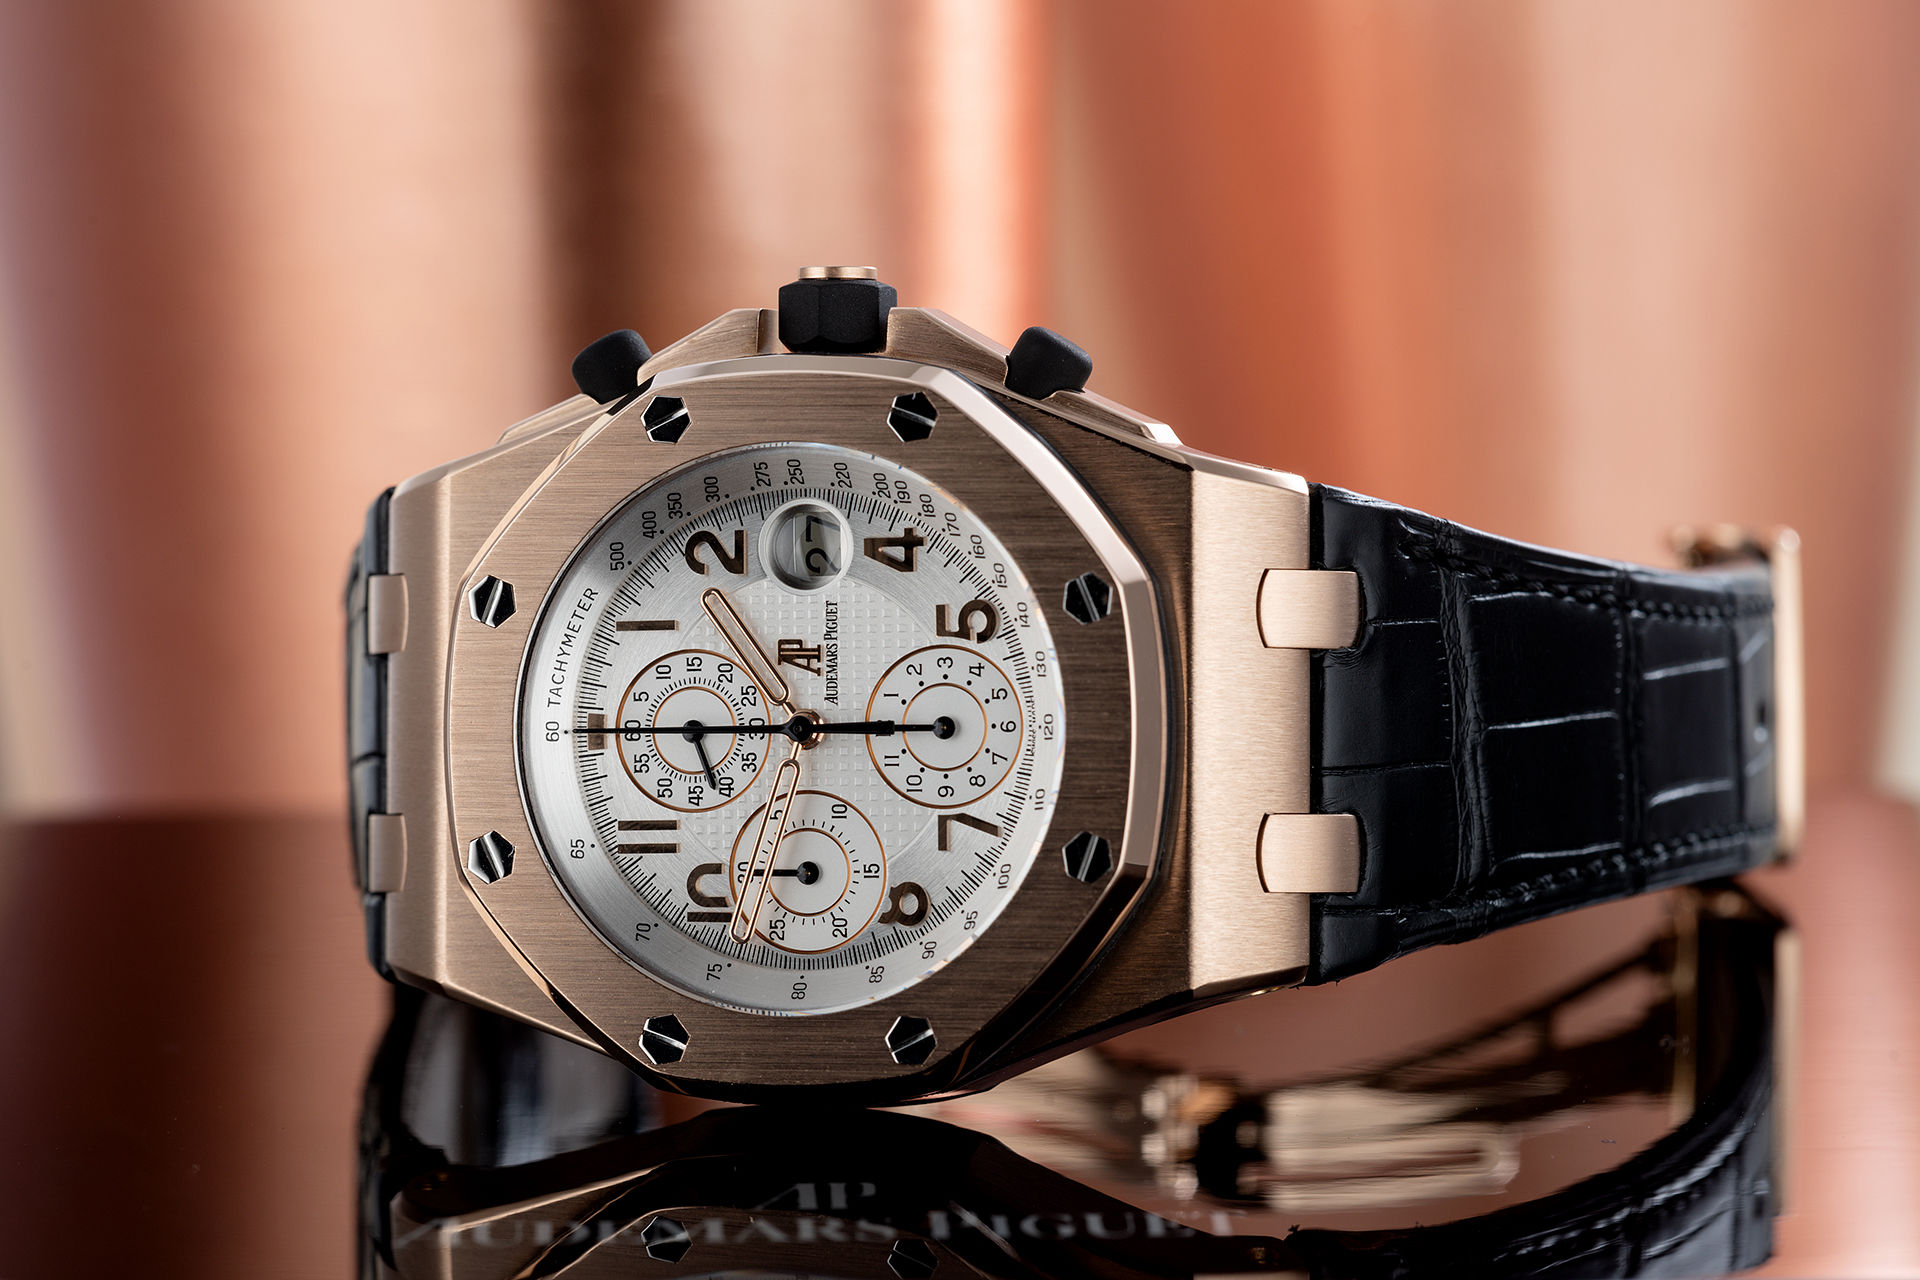 ref 26061OR.OO.D002CR.01 | Limited Edition 'One of 200' | Audemars Piguet Royal Oak Offshore